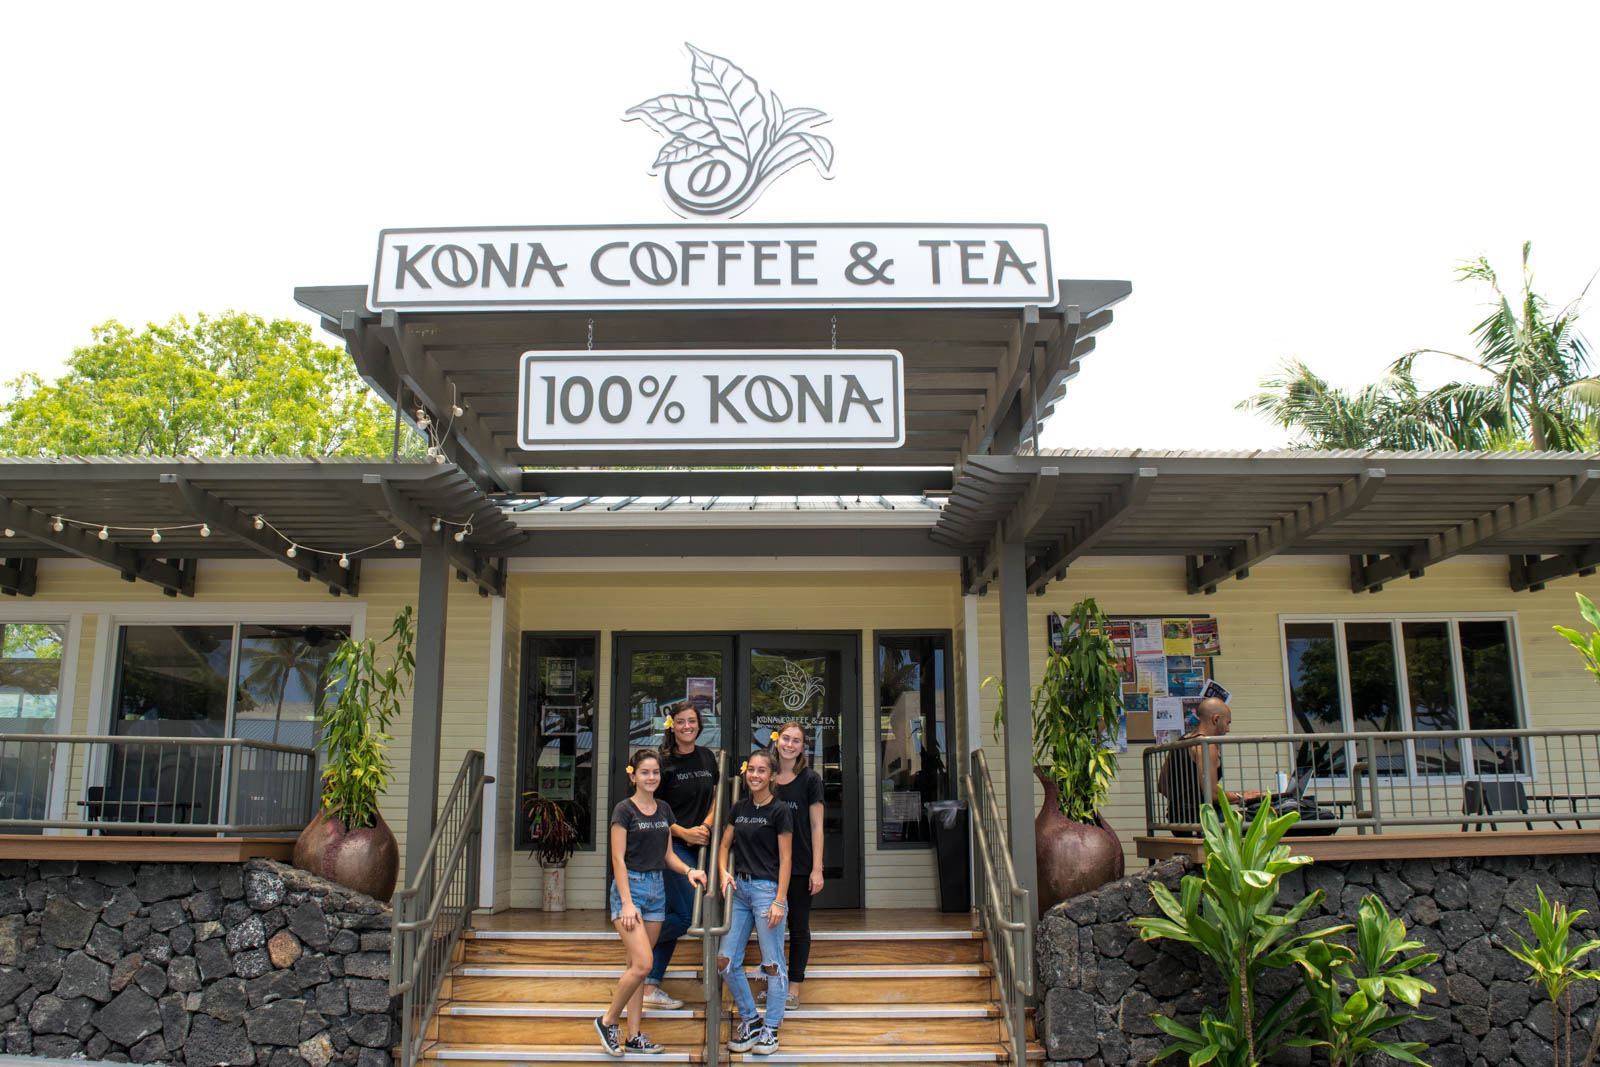 Kona Coffee Shop